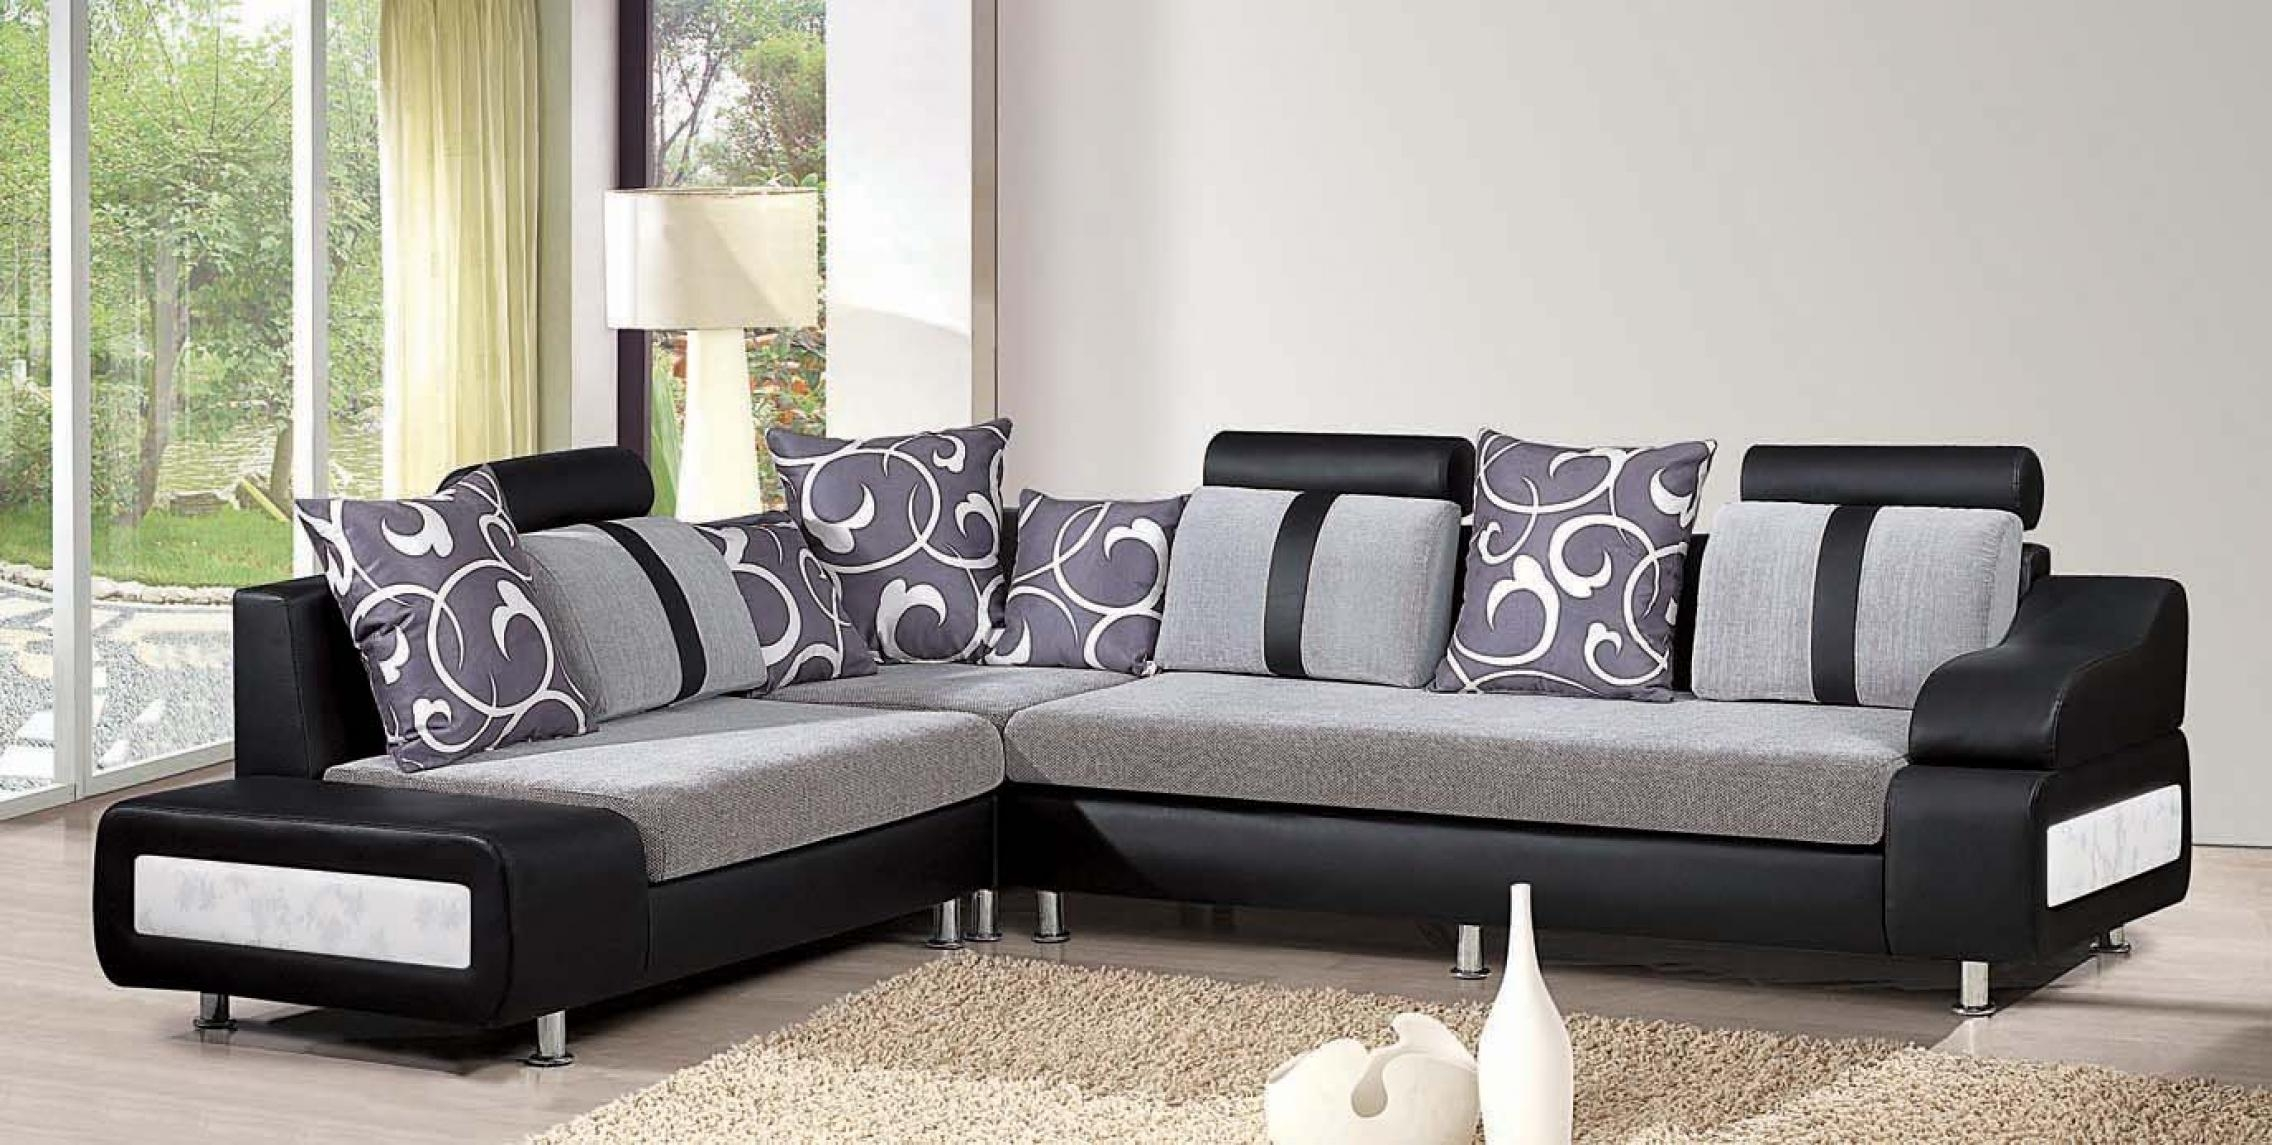 Living Room: Great Sofa Chairs For Living Room Sofa & Chair, Sofa Intended For Elegant Sofas And Chairs (Image 17 of 20)